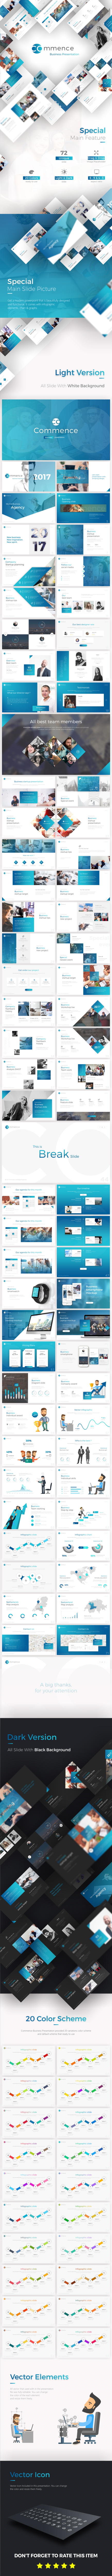 Commence Business Presentation - Business PowerPoint Templates